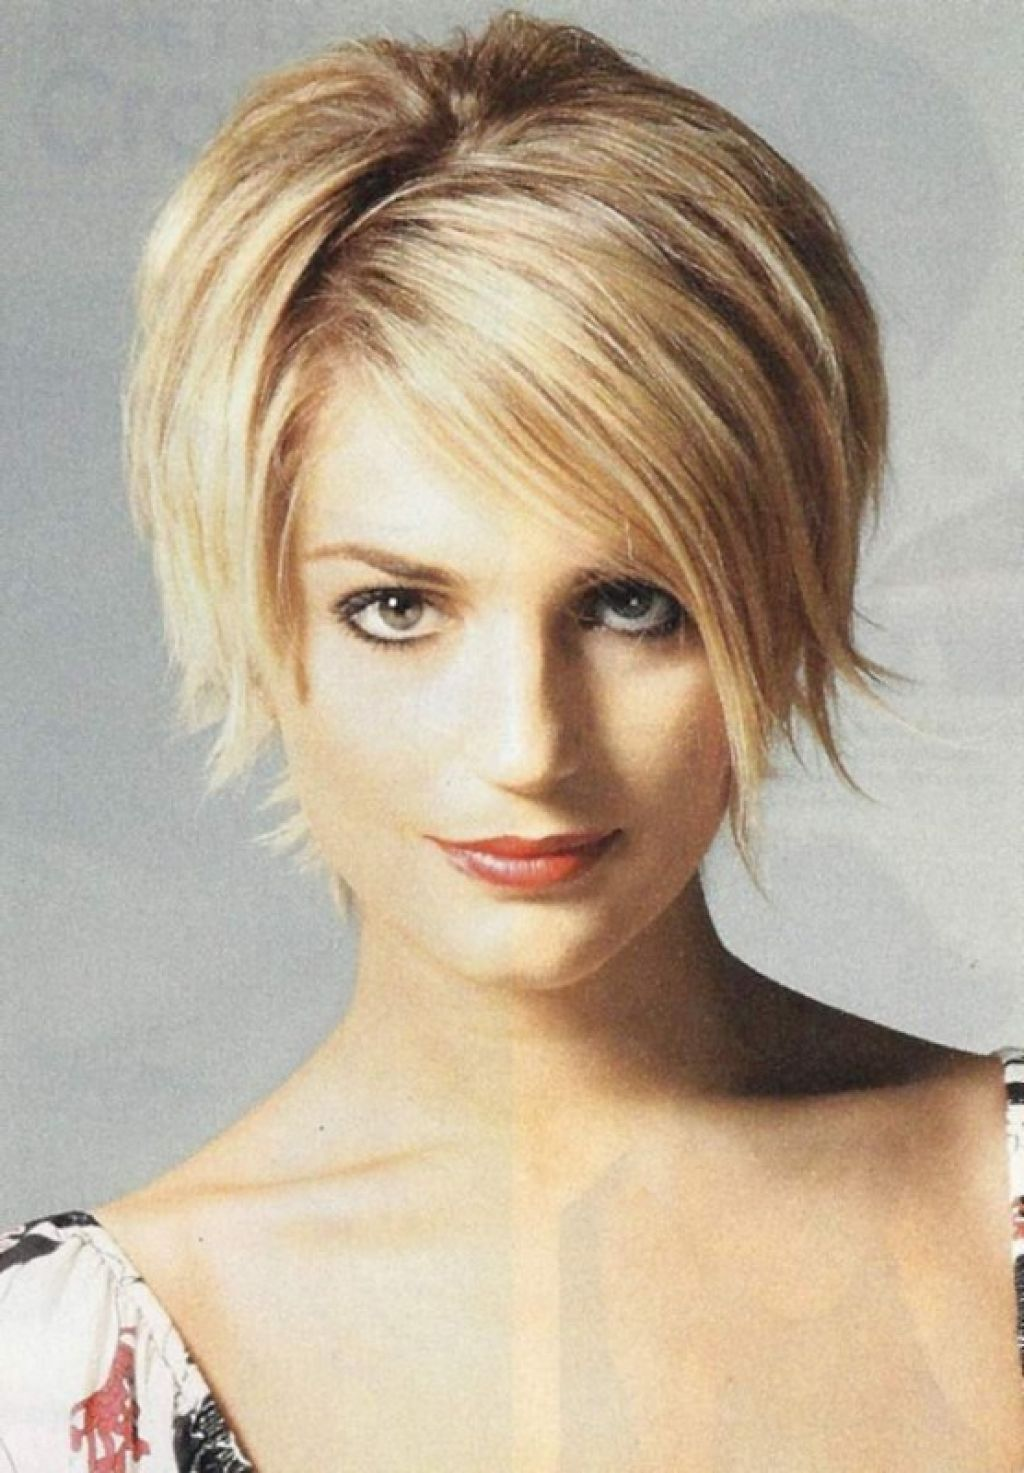 Hairstyles For Thin Fine Hair Amazing Short To Medium Hairstyles For Thin Fine Hair